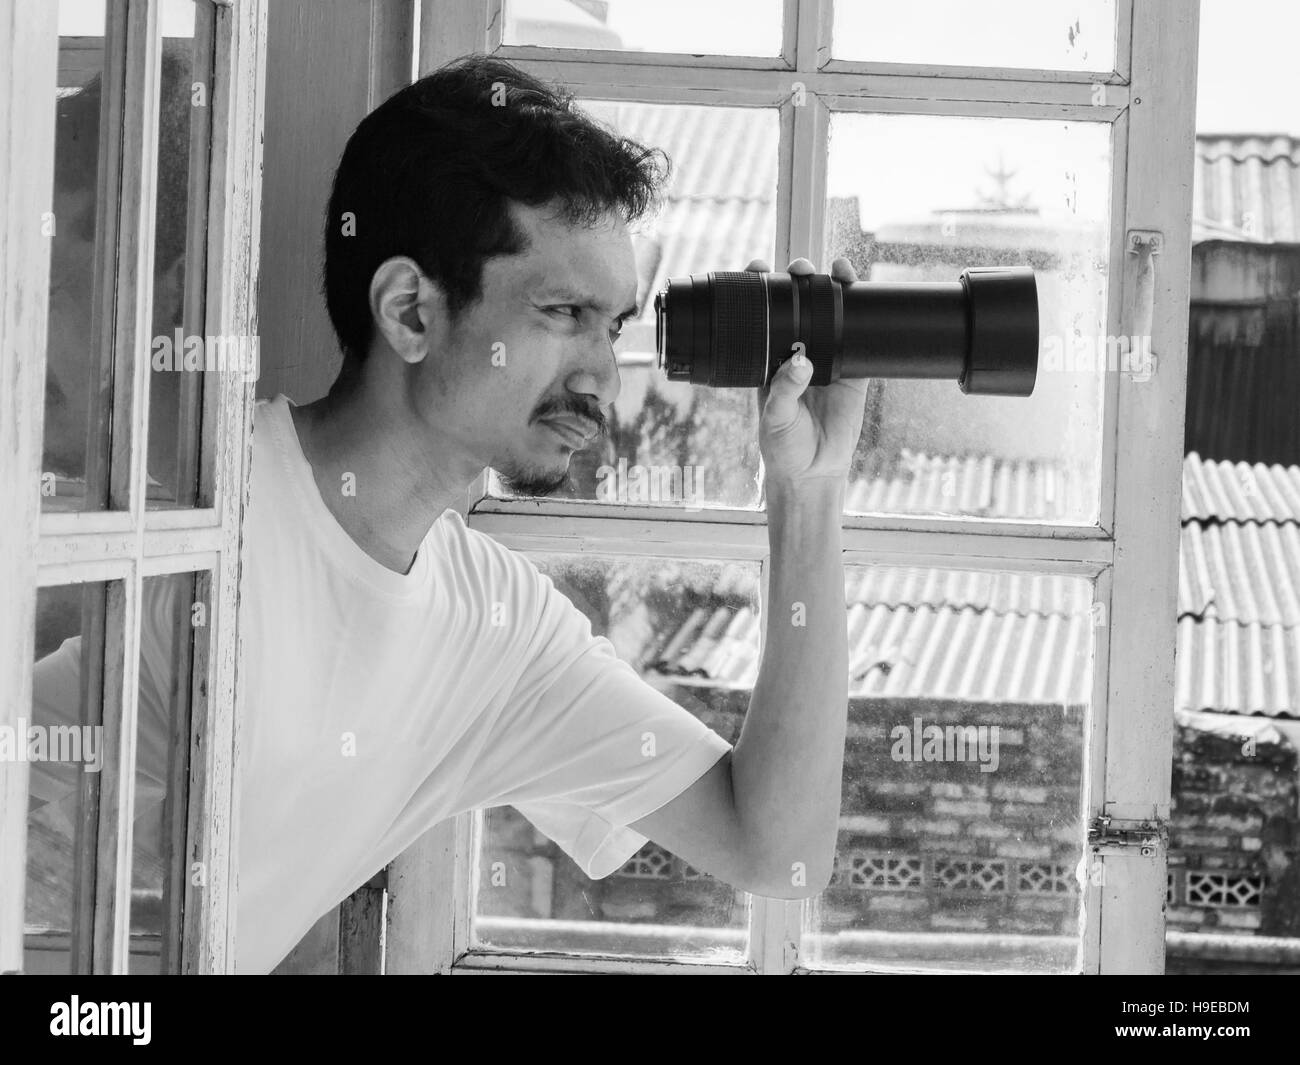 Man looking out through a window using a telephoto lens. Humorous concept in Black and white photography. Stock Photo